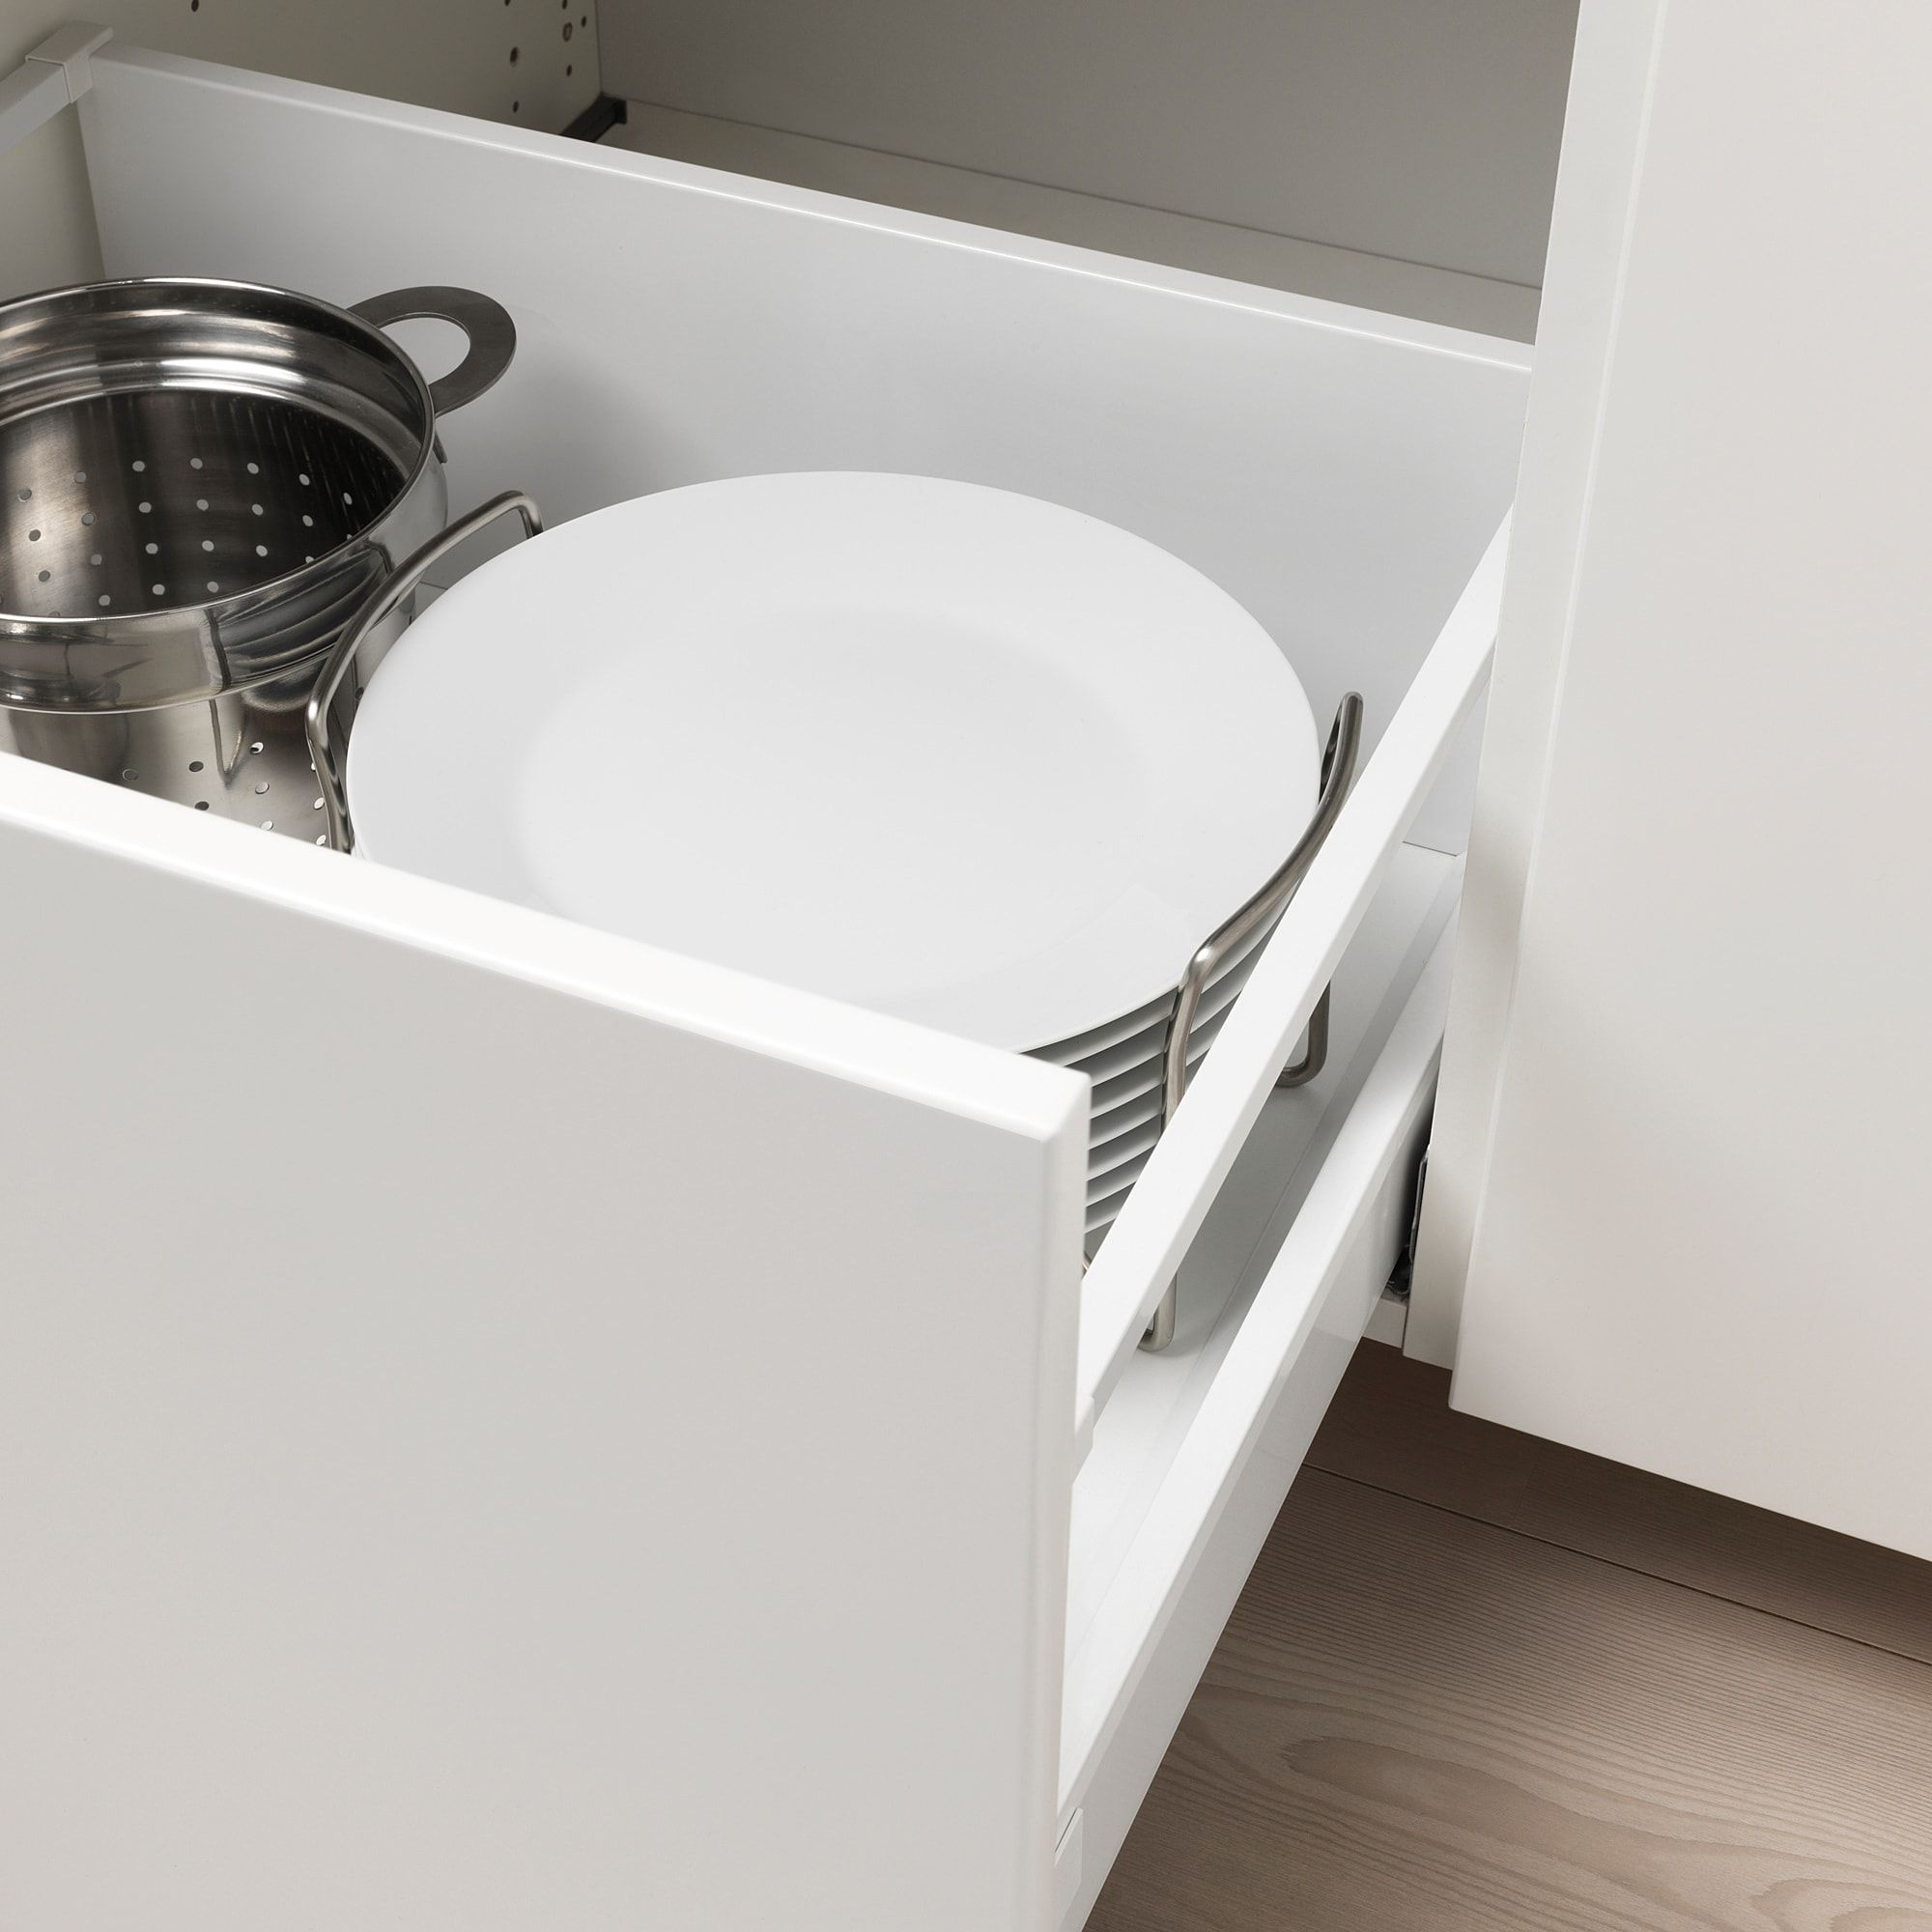 Variera Sup Ustens Sup Assiettes Egouttoir Bambou 21 31 Cm Ikea In 2020 Kitchen Drawer Dividers Plate Holder Ikea Cabinets